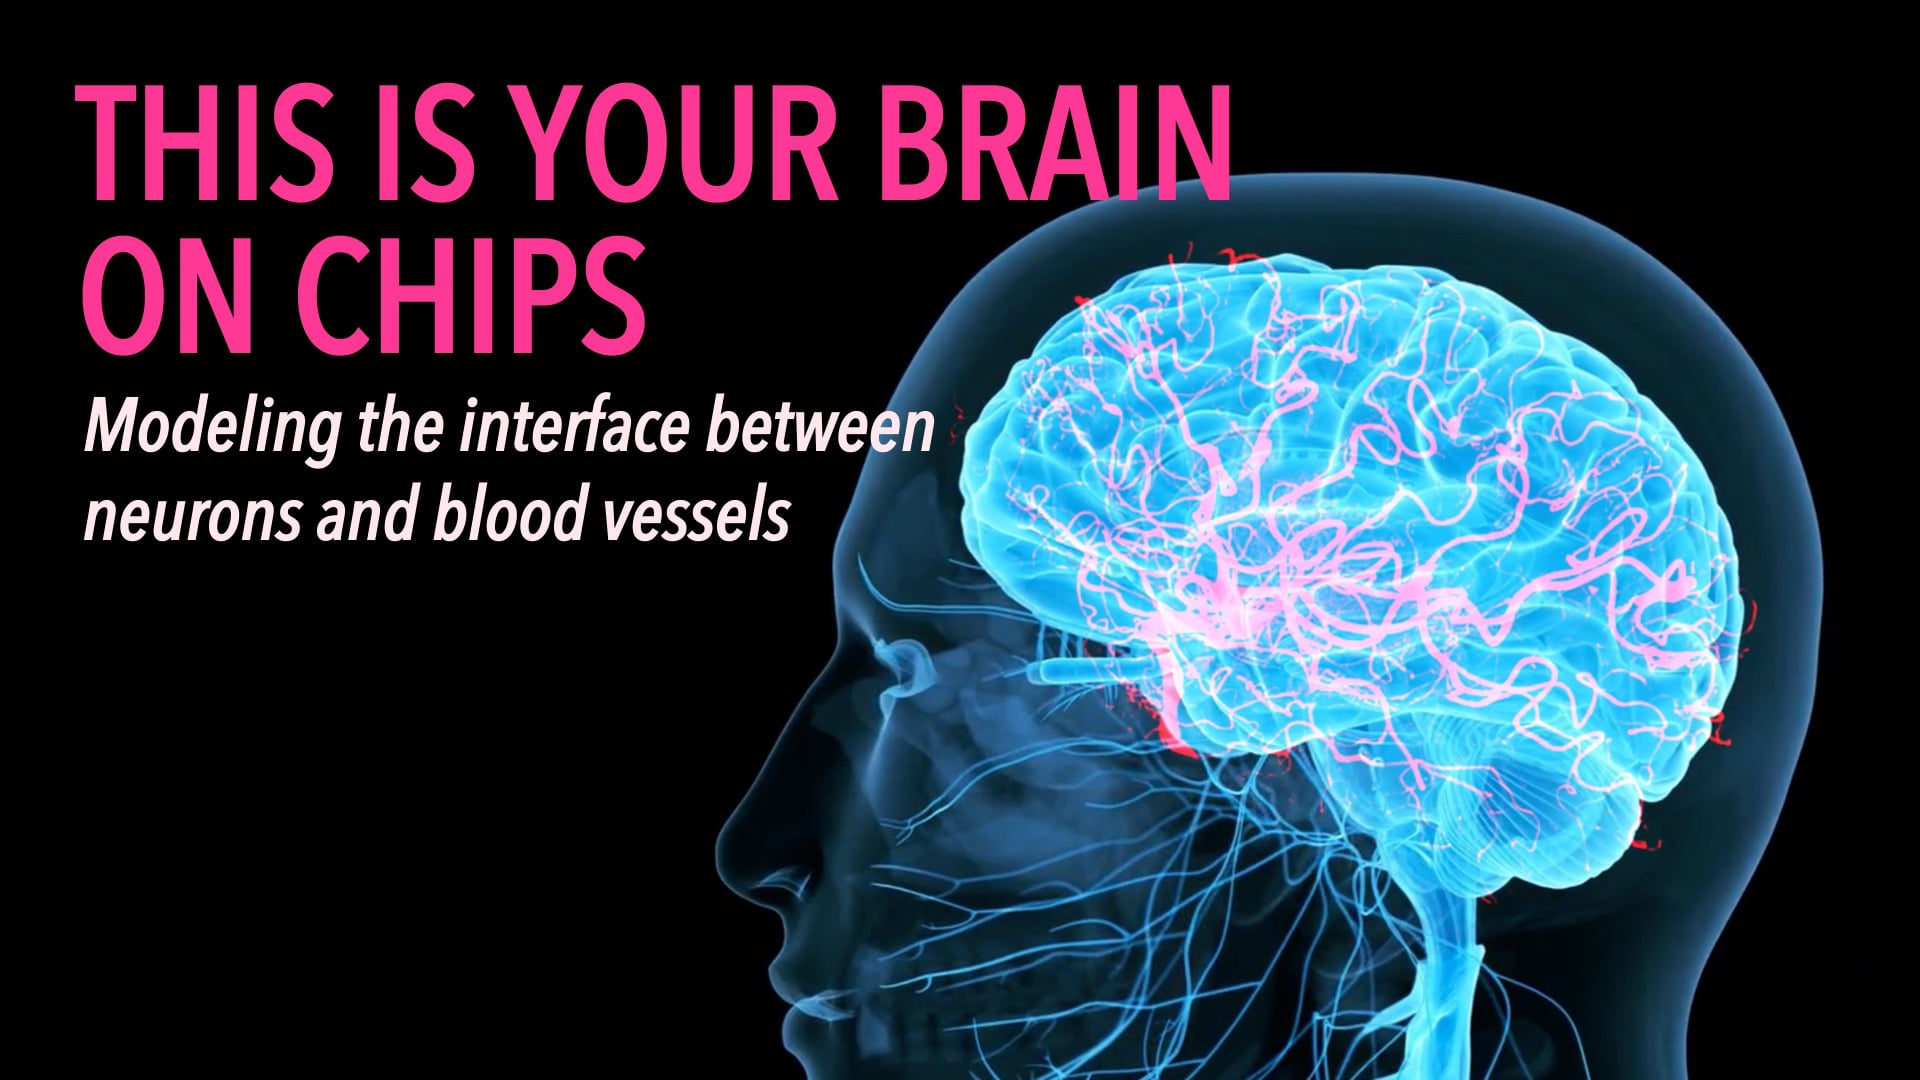 This is Your Brain on Chips